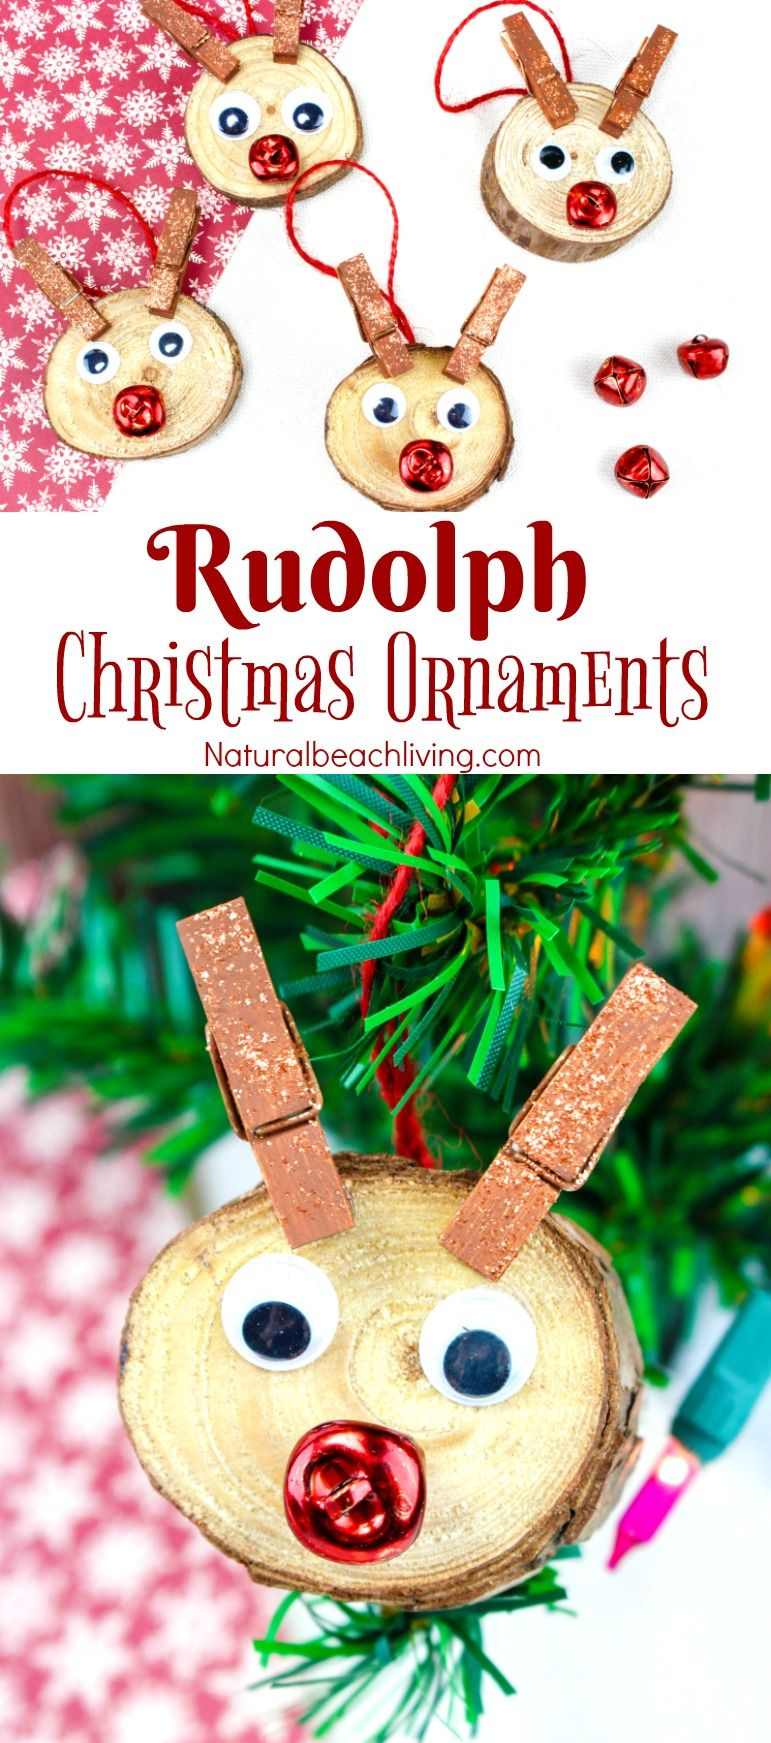 Easy To Make Rudolph Christmas Ornaments Kids Will Love Natural Beach Living Kids Christmas Ornaments Christmas Ornaments Kids Ornaments